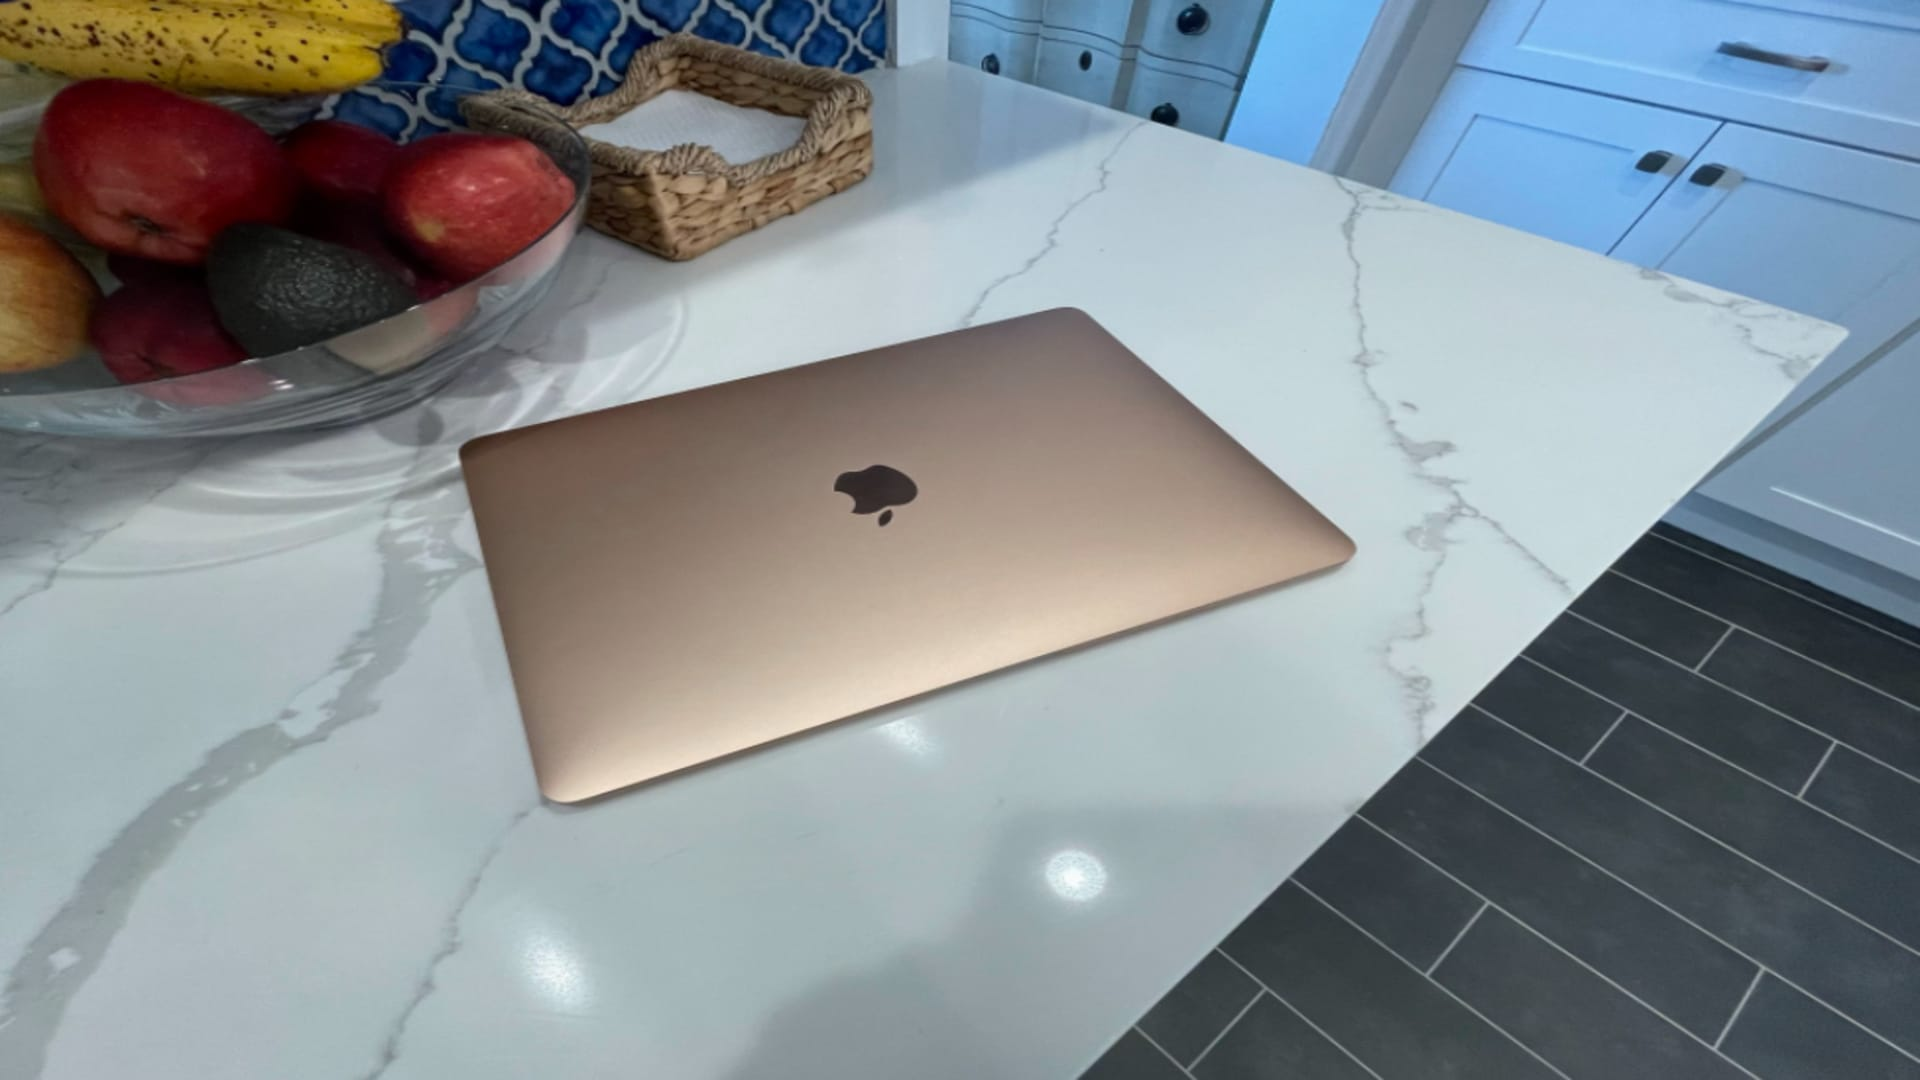 2020 MacBook Air with M1 chip